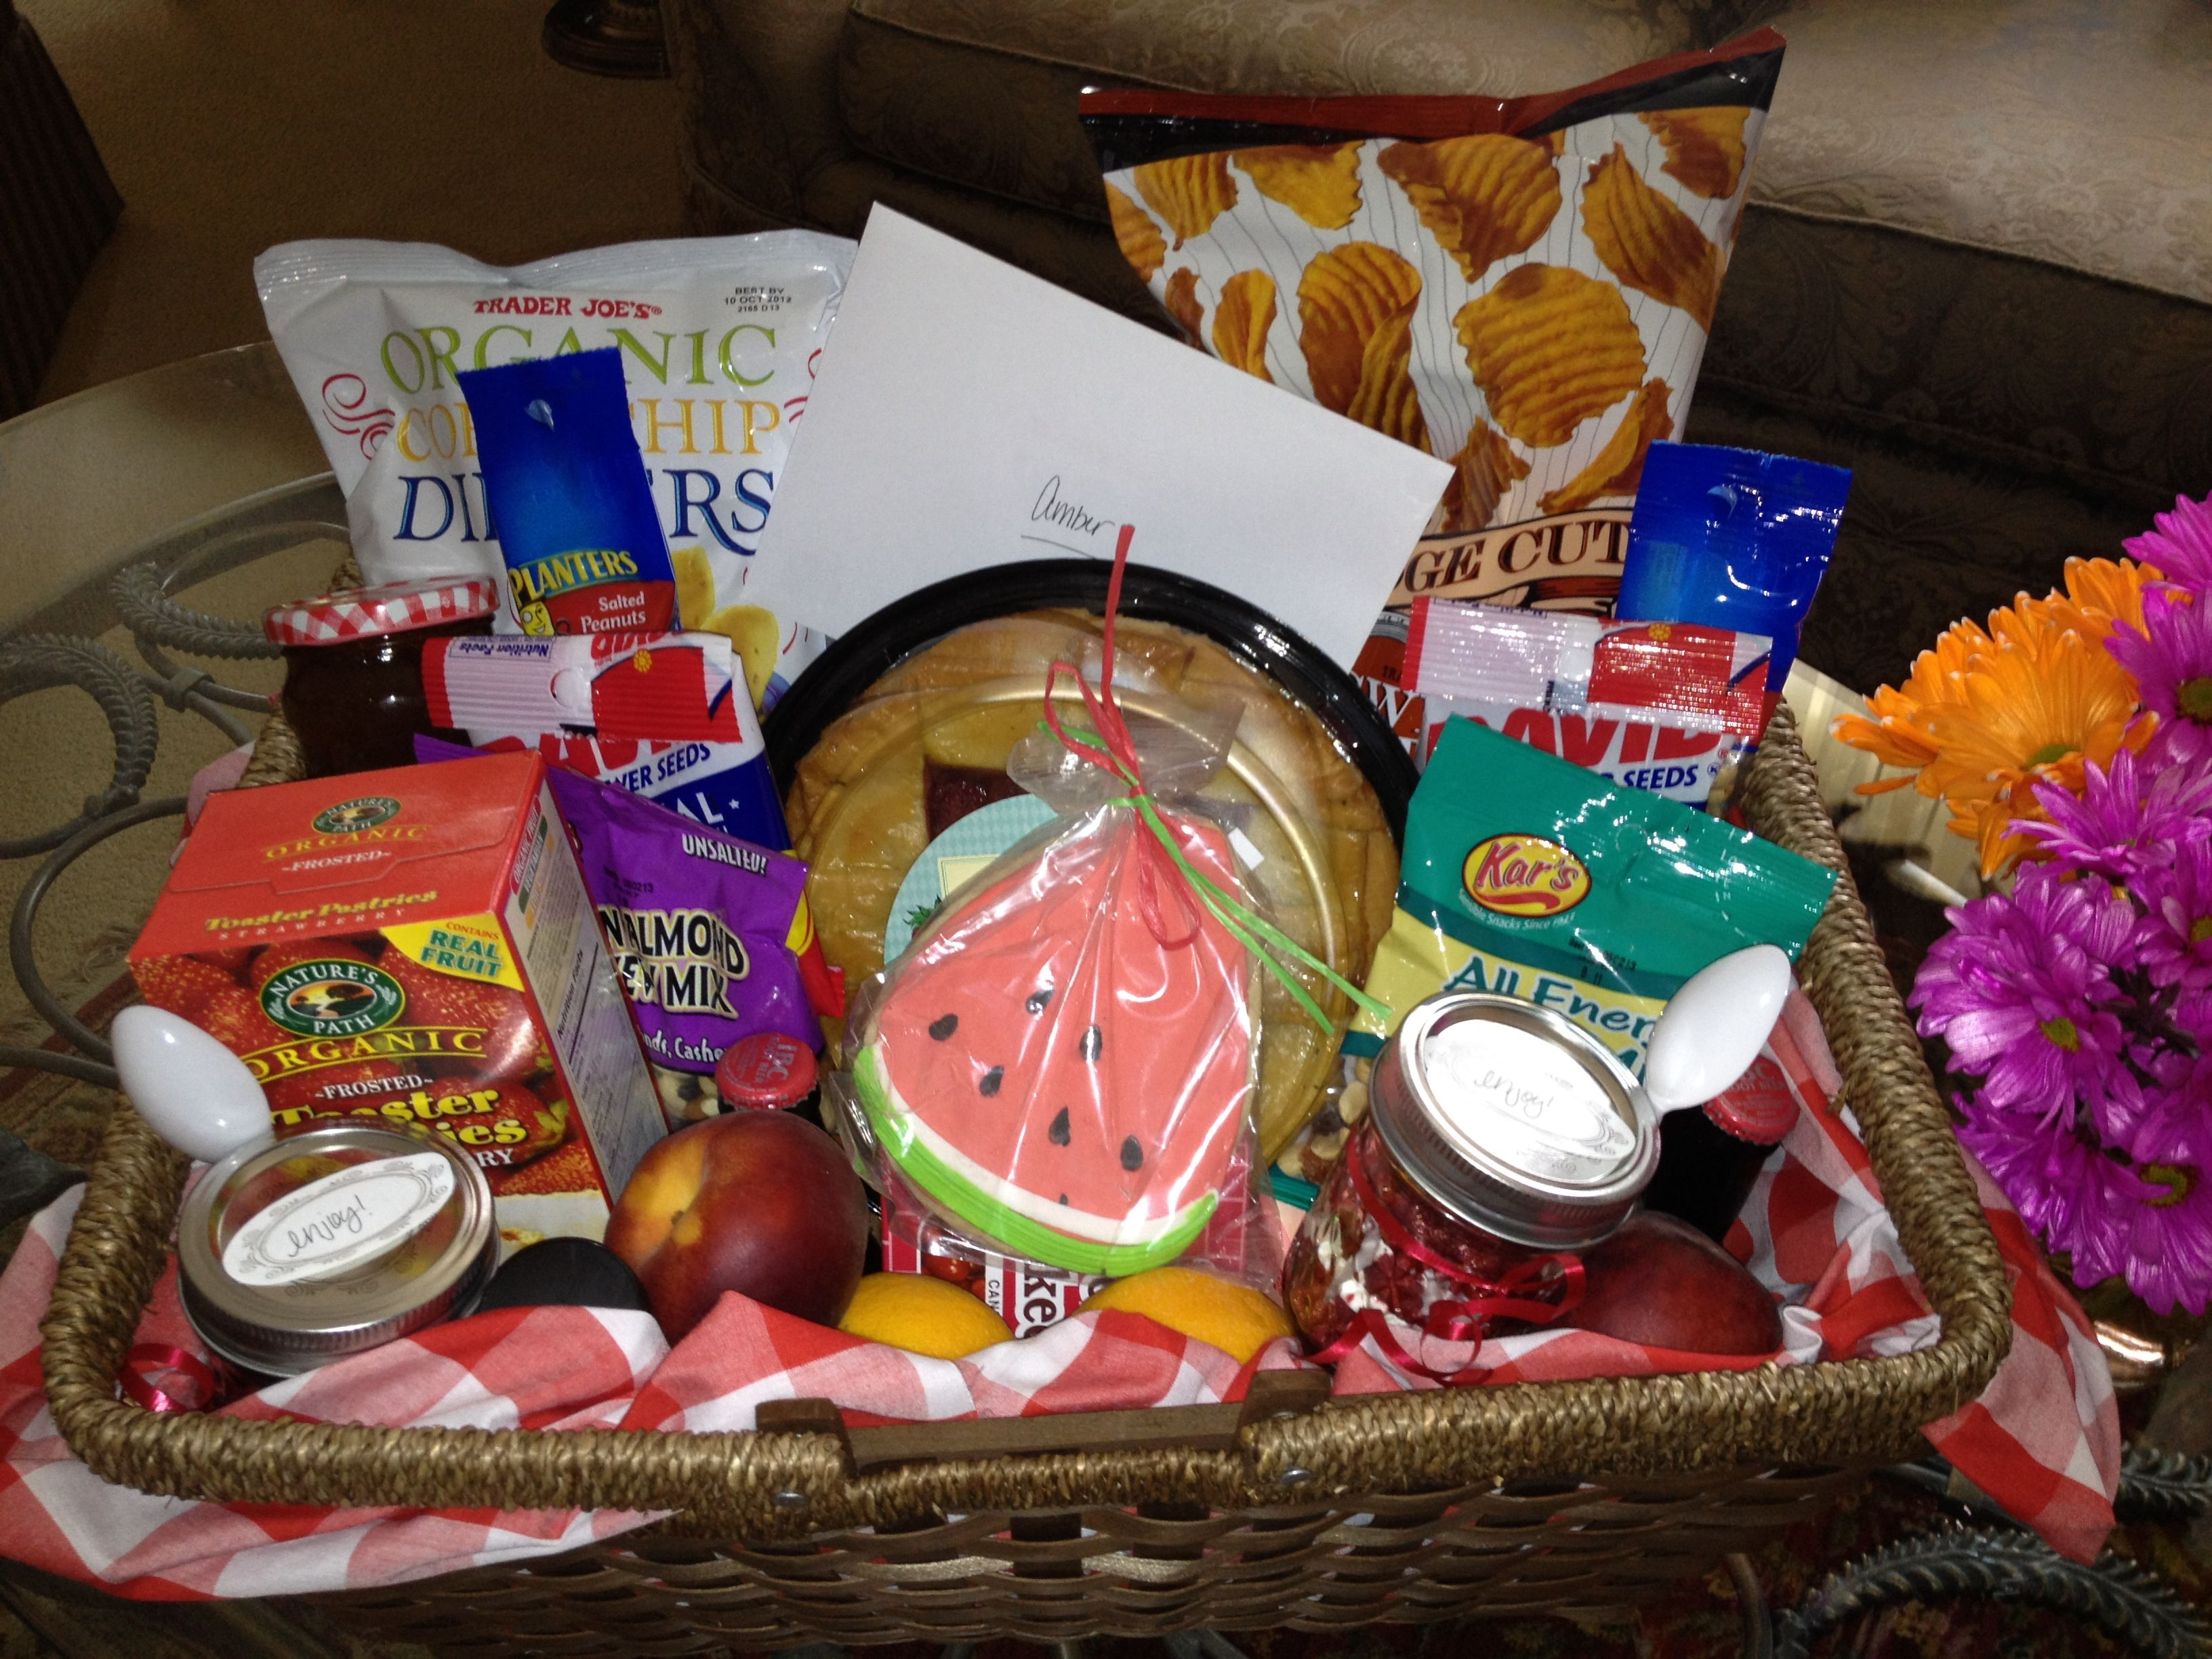 Chrissy Leverett Crlevere Themed Gift Baskets Gift Baskets Diy Gifts